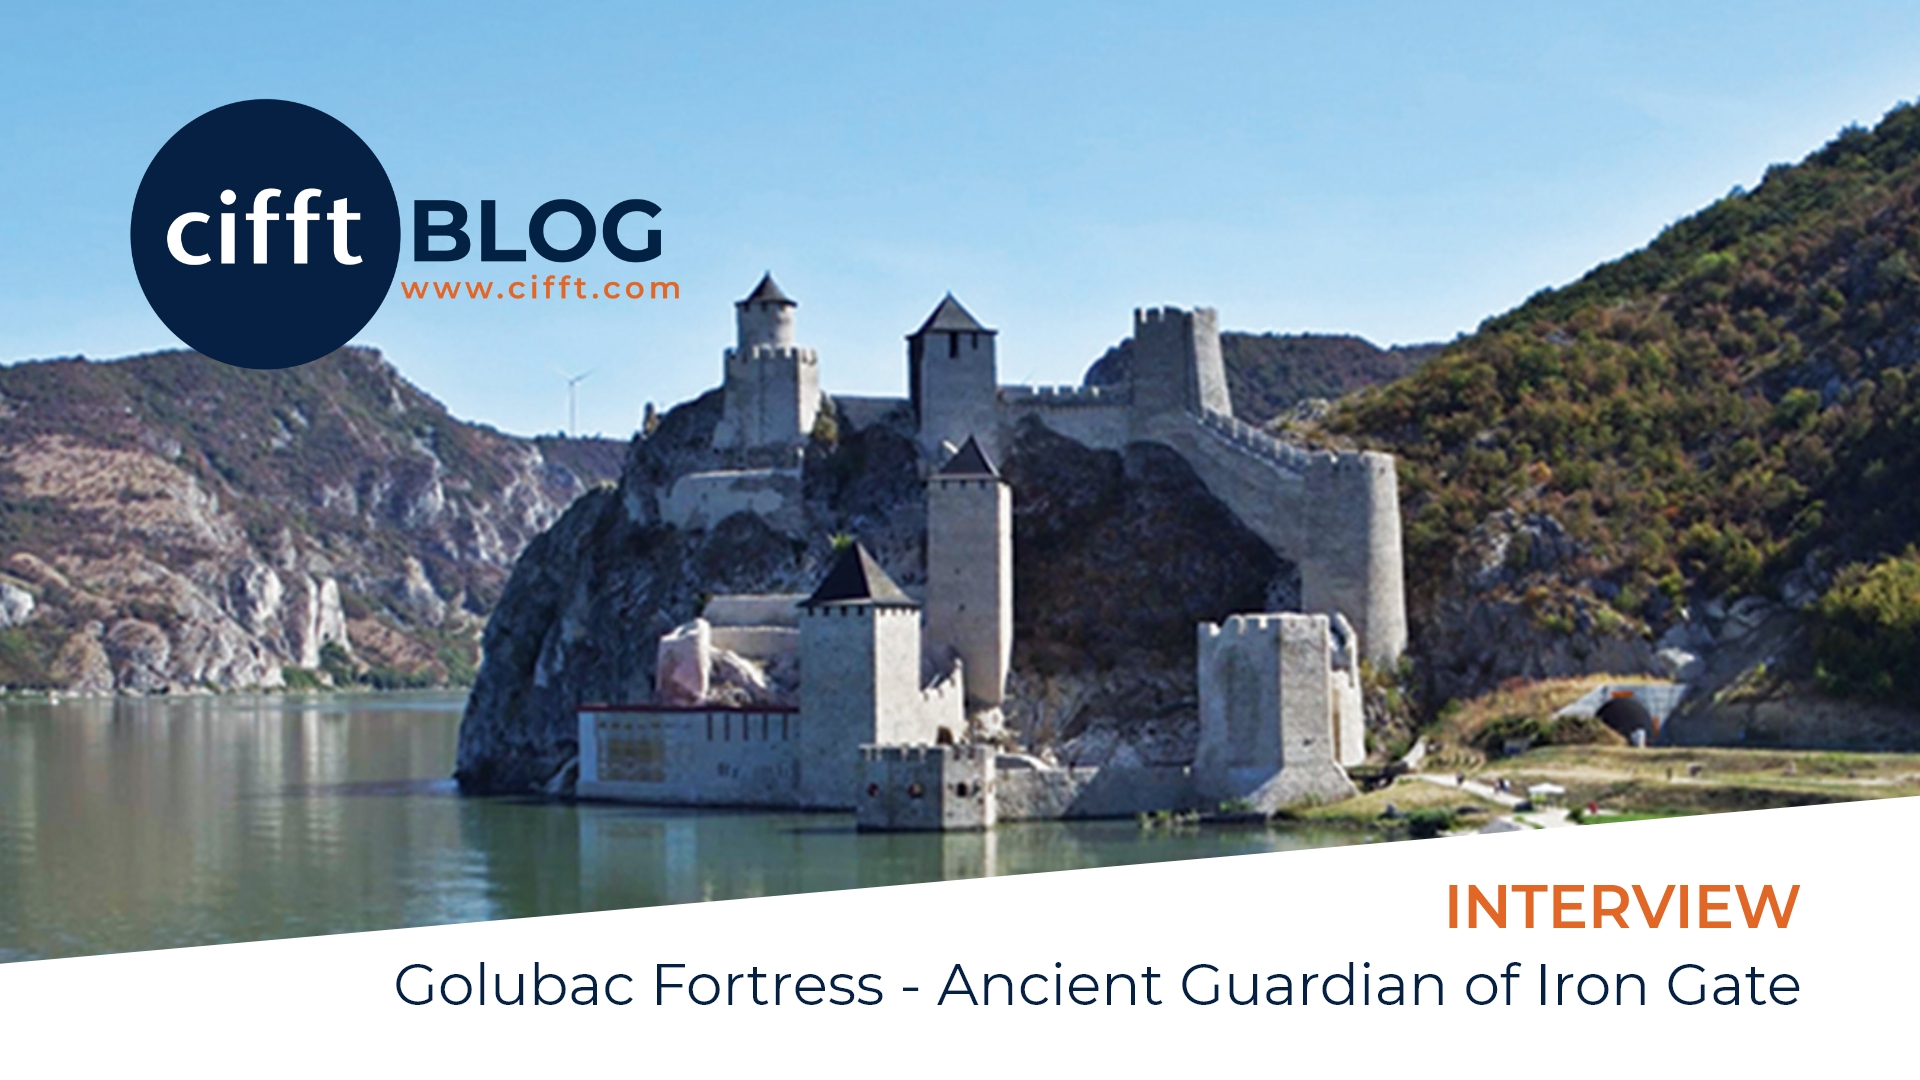 Golubac Fortress - Ancient Guardian of Iron Gate